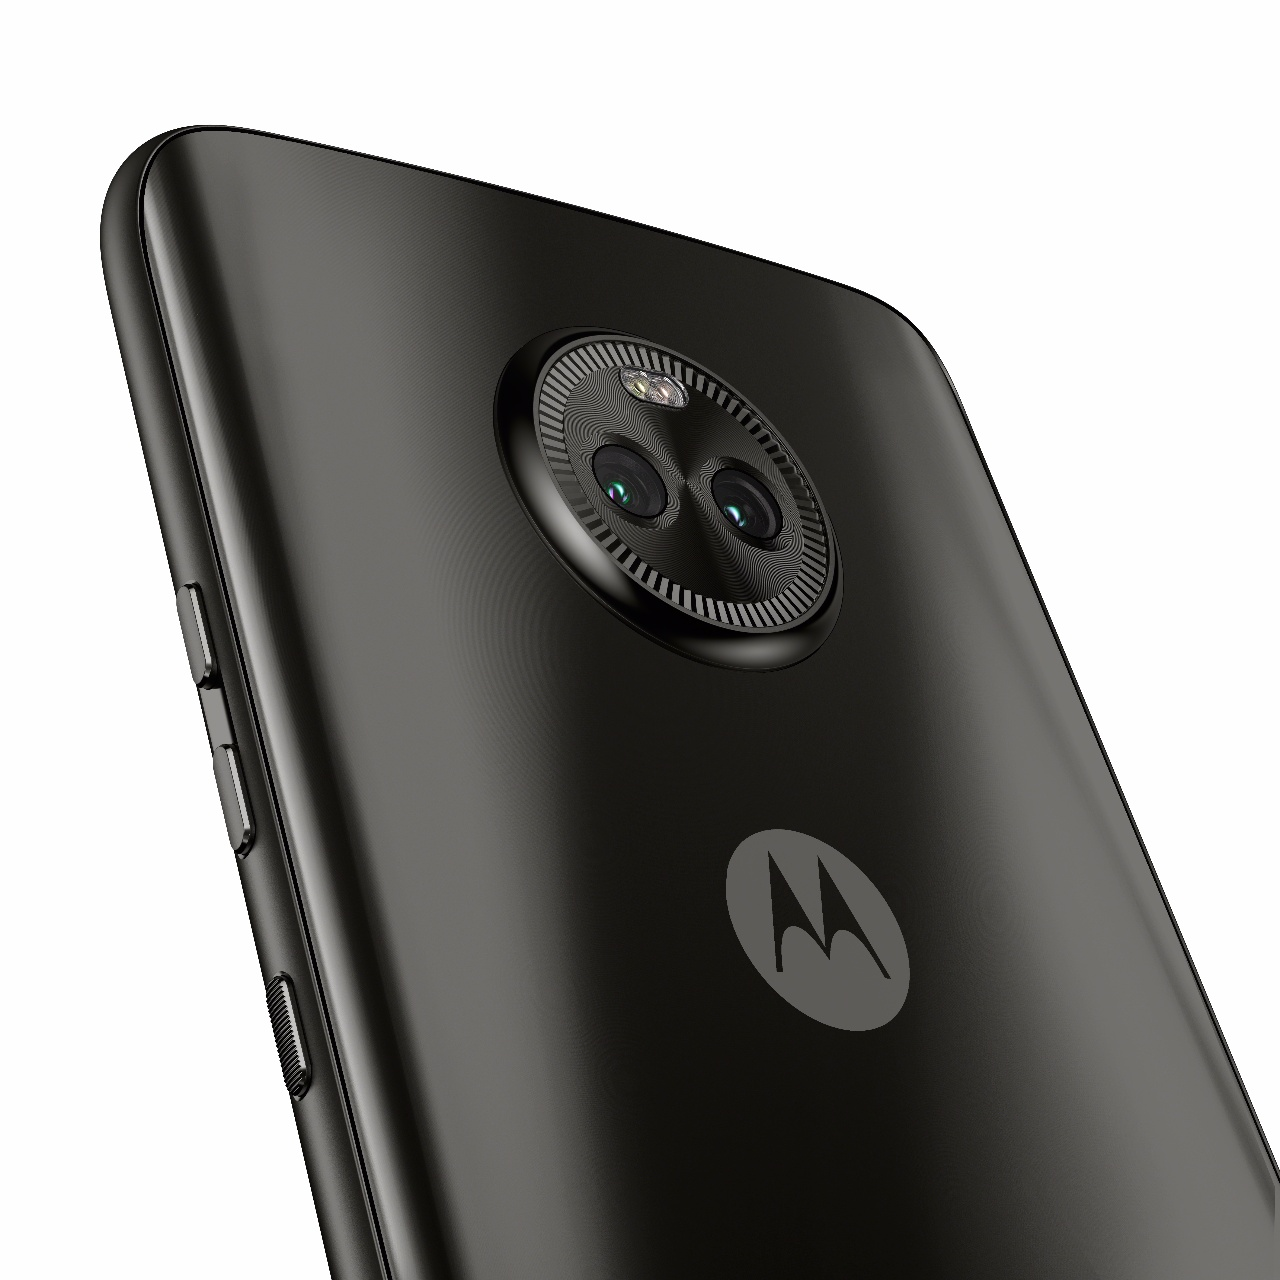 Moto X4 Android One Smartphone Launched in the United States for $399